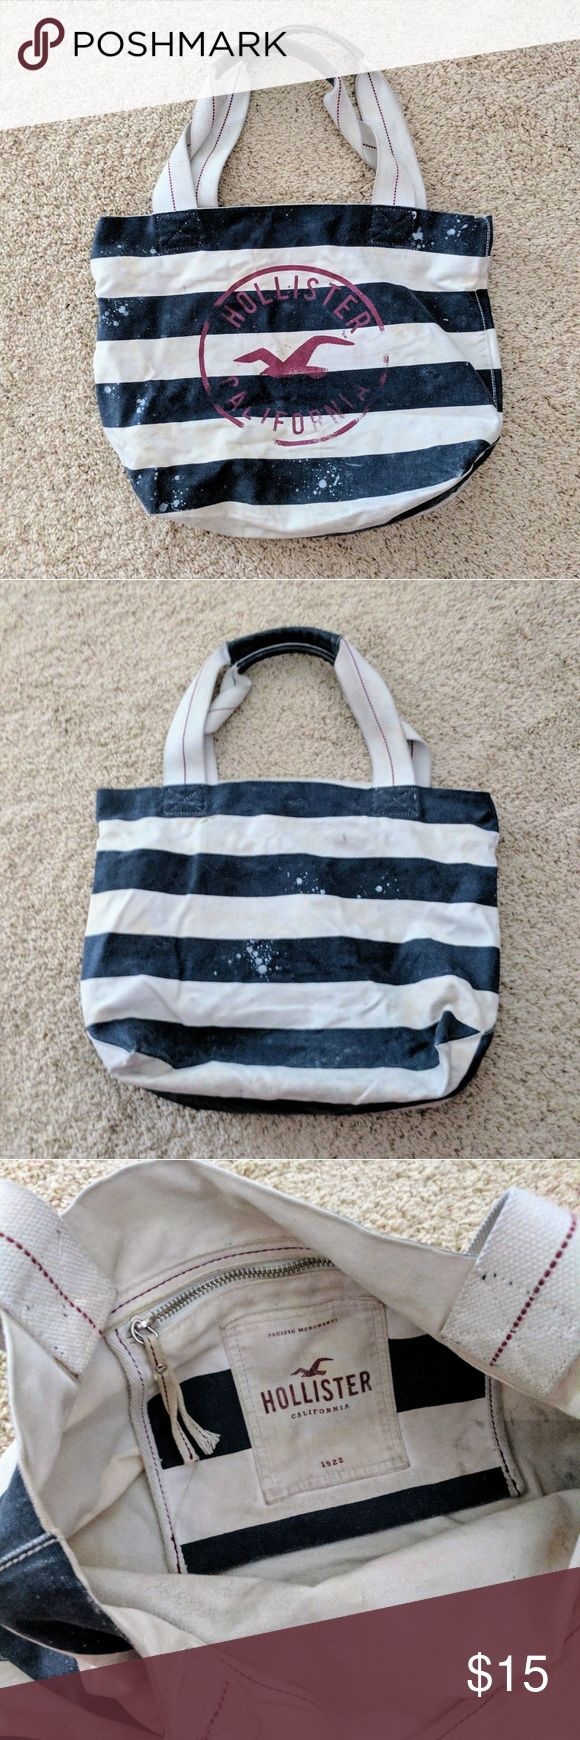 Price drop! Striped Canvas Hollister Tote Blue and white striped Hollister tote bag Has inside zippered pocket  This is a great bag! Only selling because I have way too many totes and need to clear some out! Used condition but still in great shape. Offers welcome! Hollister Bags Totes